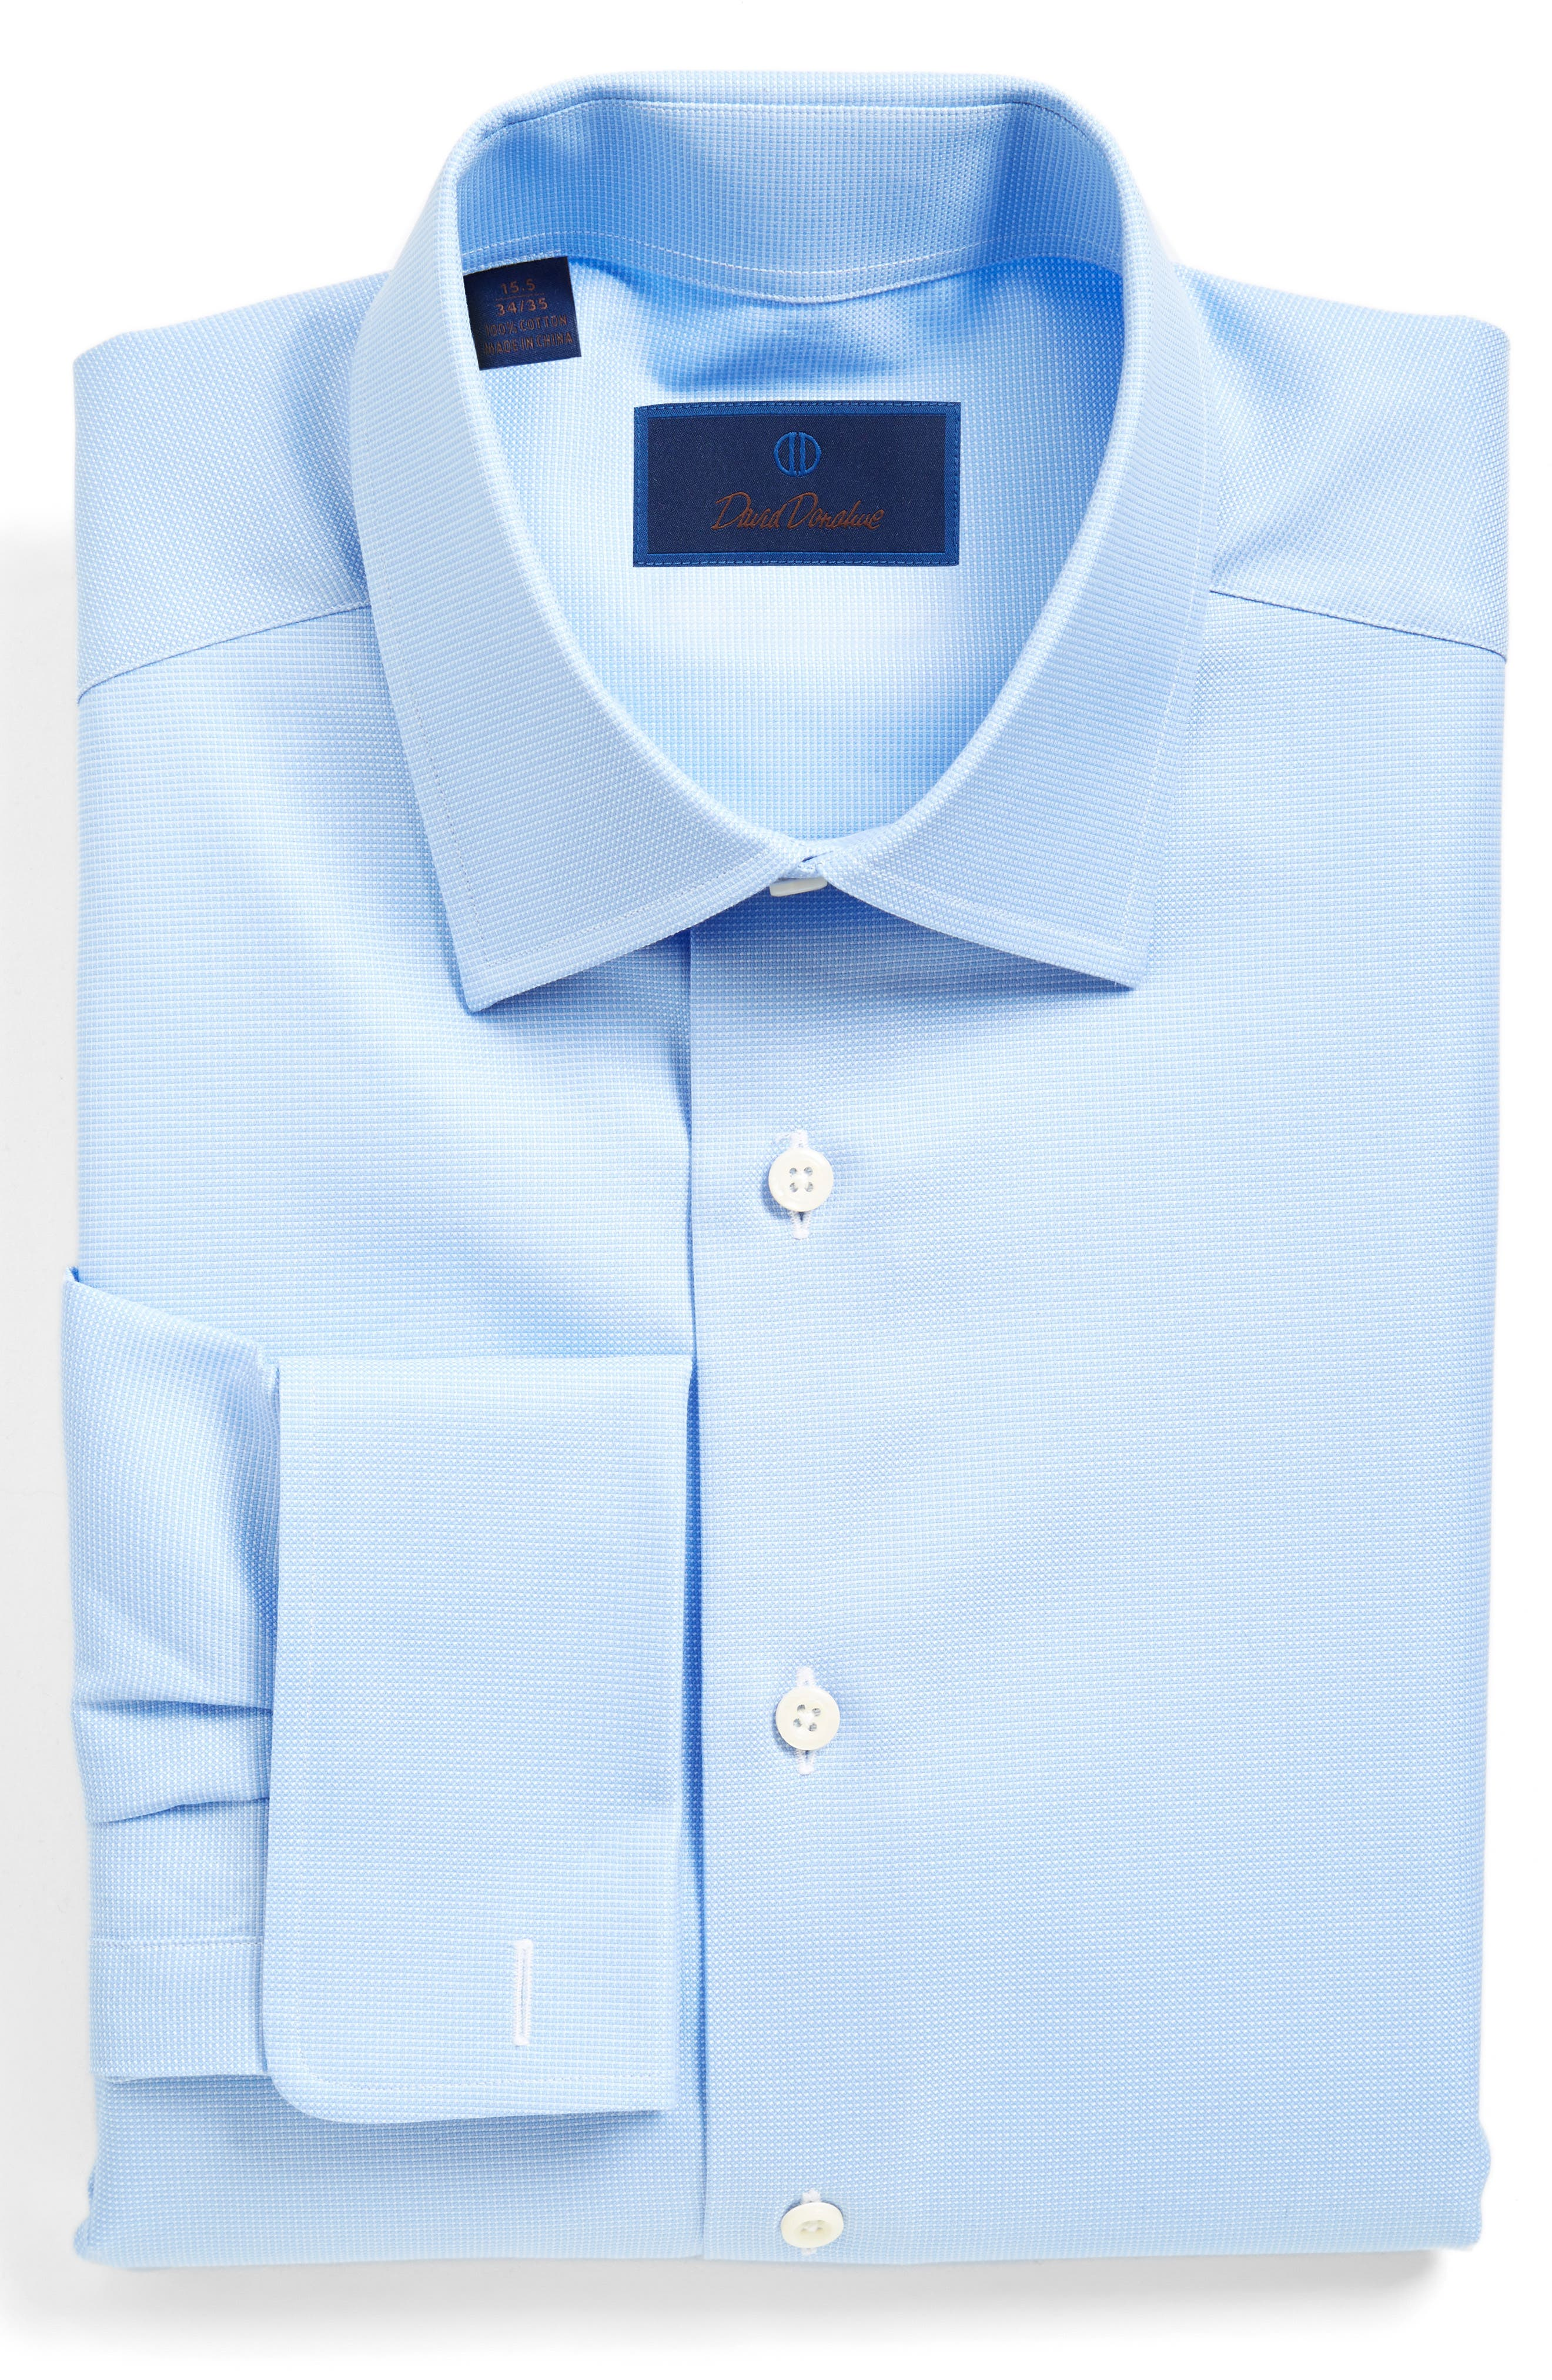 Regular Fit Dobby Check French Cuff Dress Shirt,                         Main,                         color, Blue